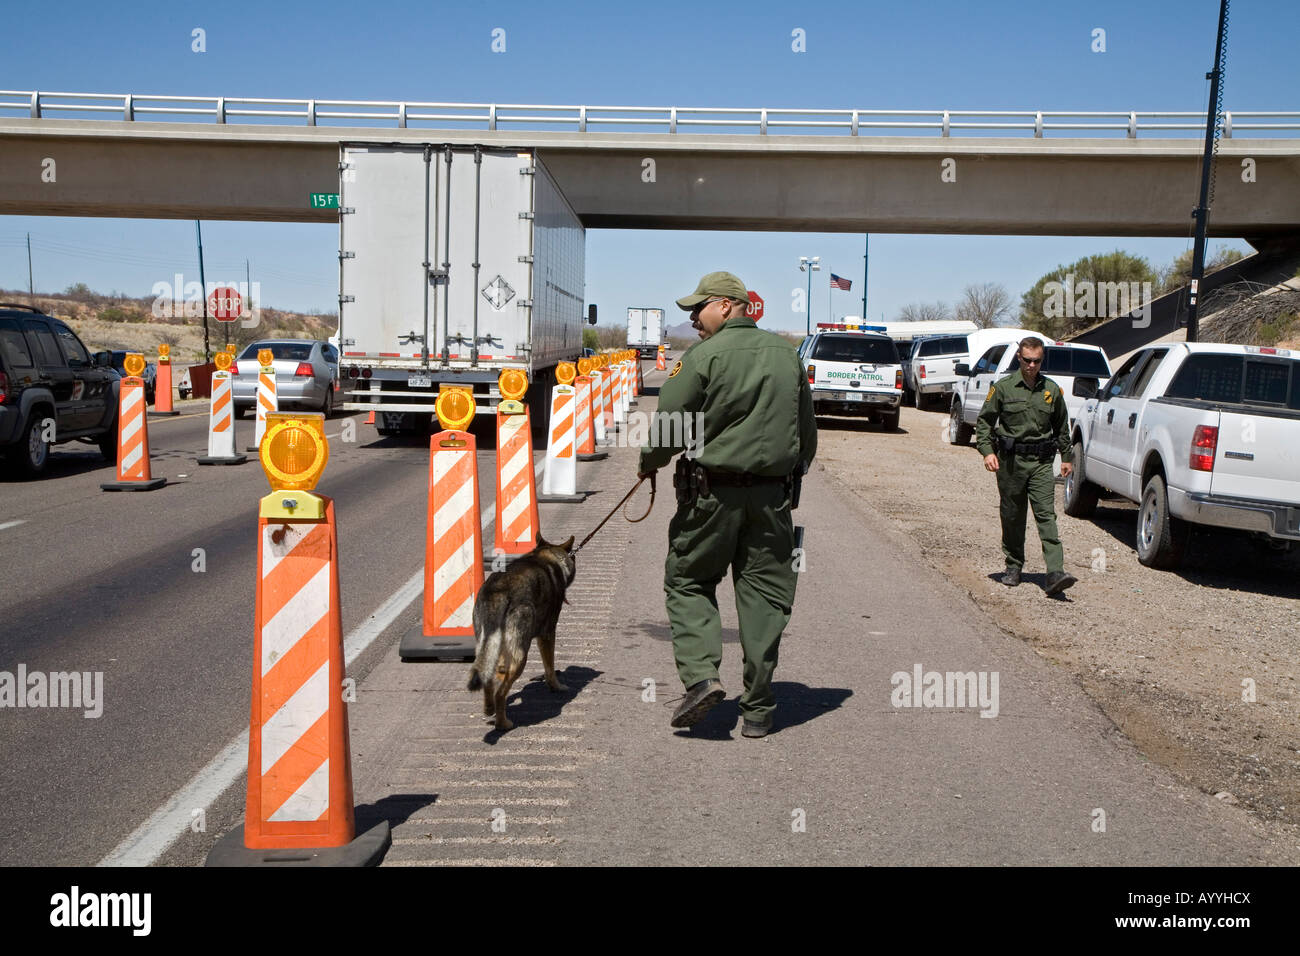 Us Border Patrol Checkpoint On Interstate Highway In Arizona Stock Image